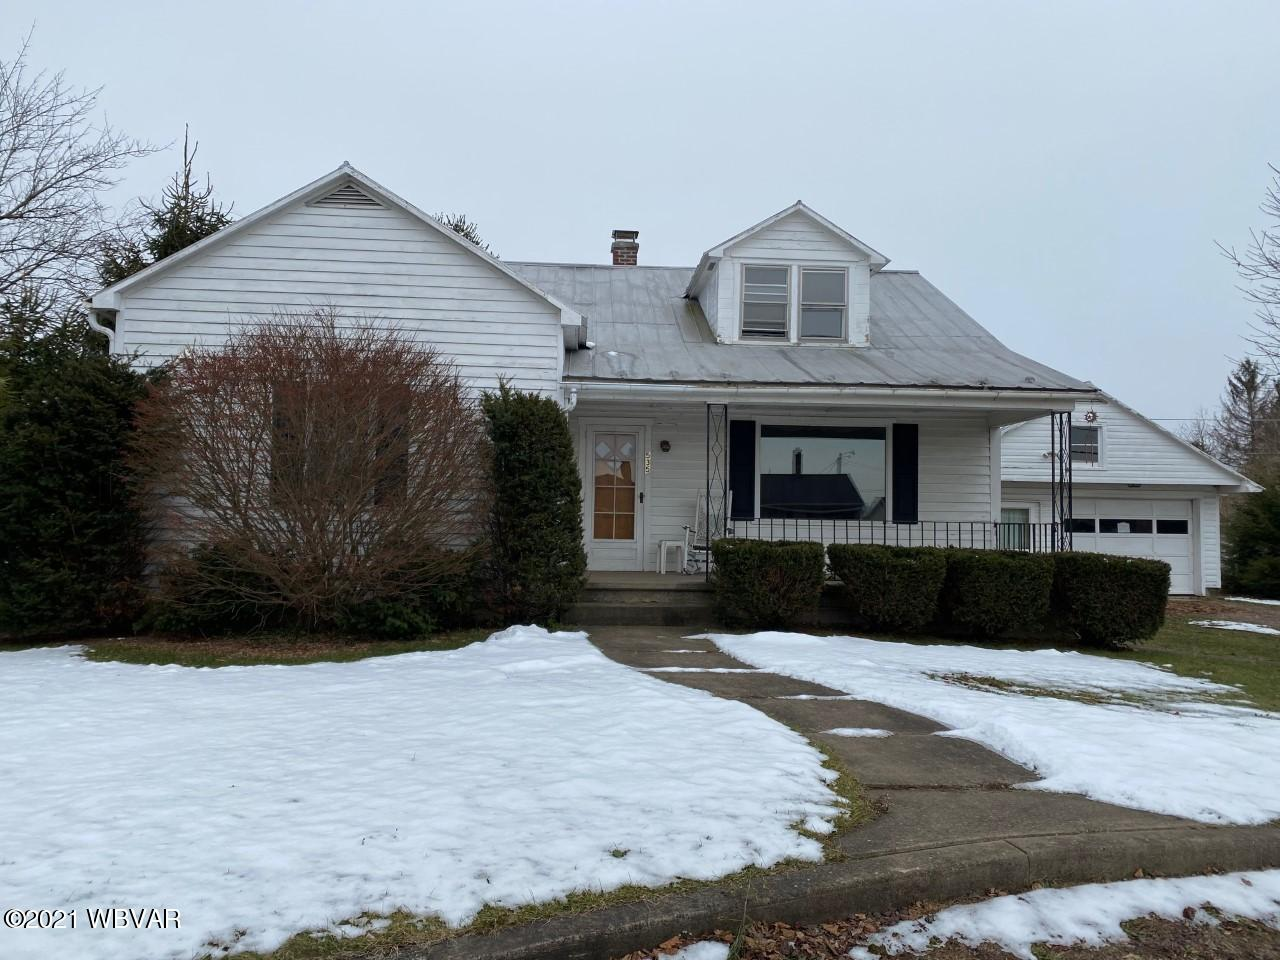 535 RTE 405 HIGHWAY, Hughesville, PA 17737, 3 Bedrooms Bedrooms, ,1.5 BathroomsBathrooms,Resid-lease/rental,For sale,RTE 405,WB-91733